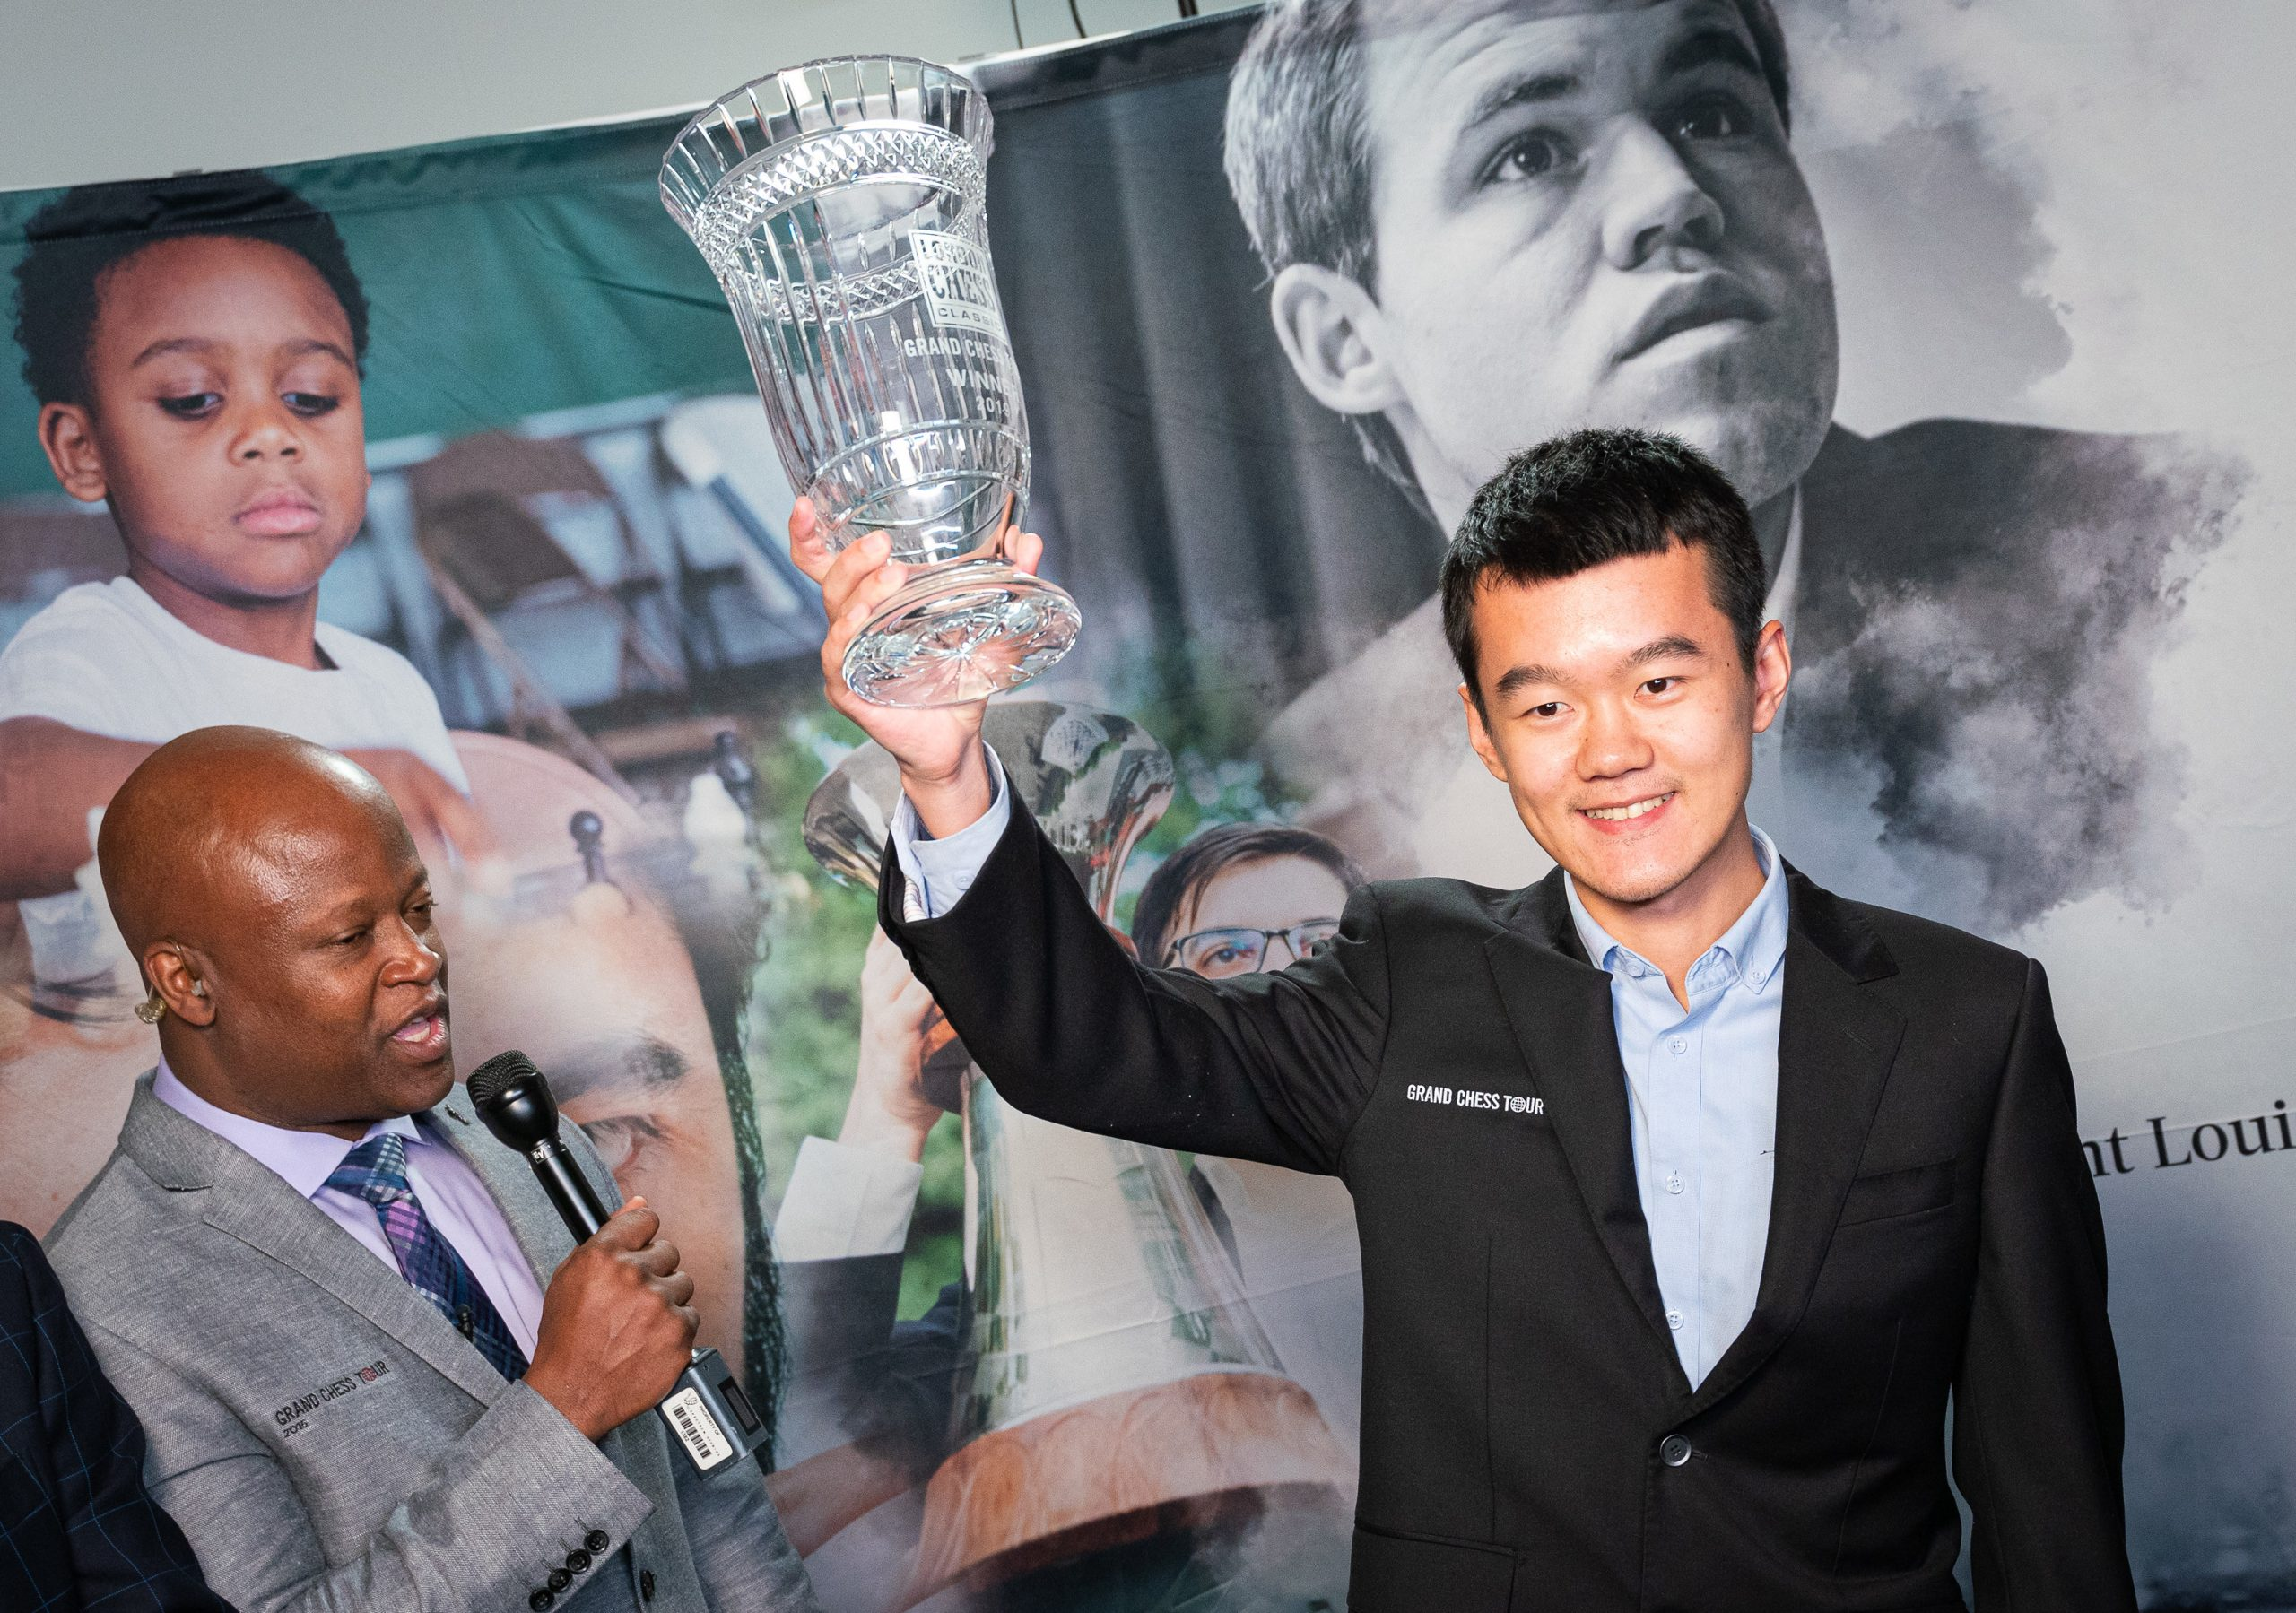 Congratulations to the winner of 2019 Grand Chess Tour, Ding Liren! | Image courtesy of Grand Chess Tour